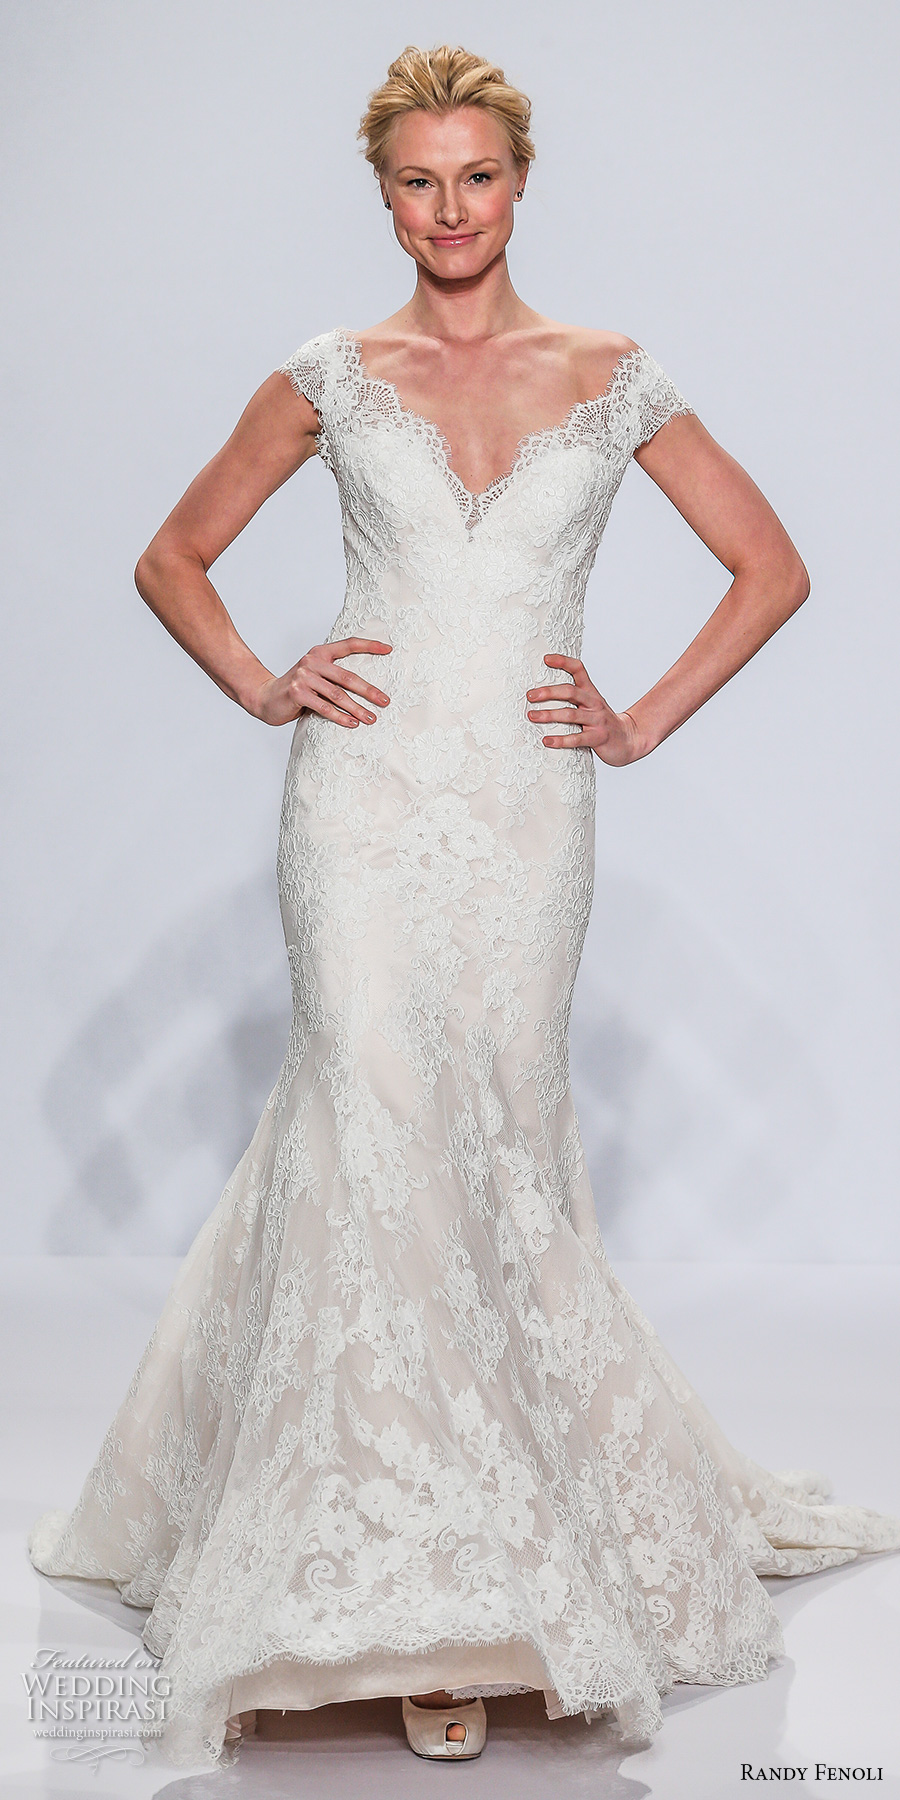 Randy fenoli bridal spring 2018 wedding dresses new york for Kleinfeld wedding dresses with sleeves